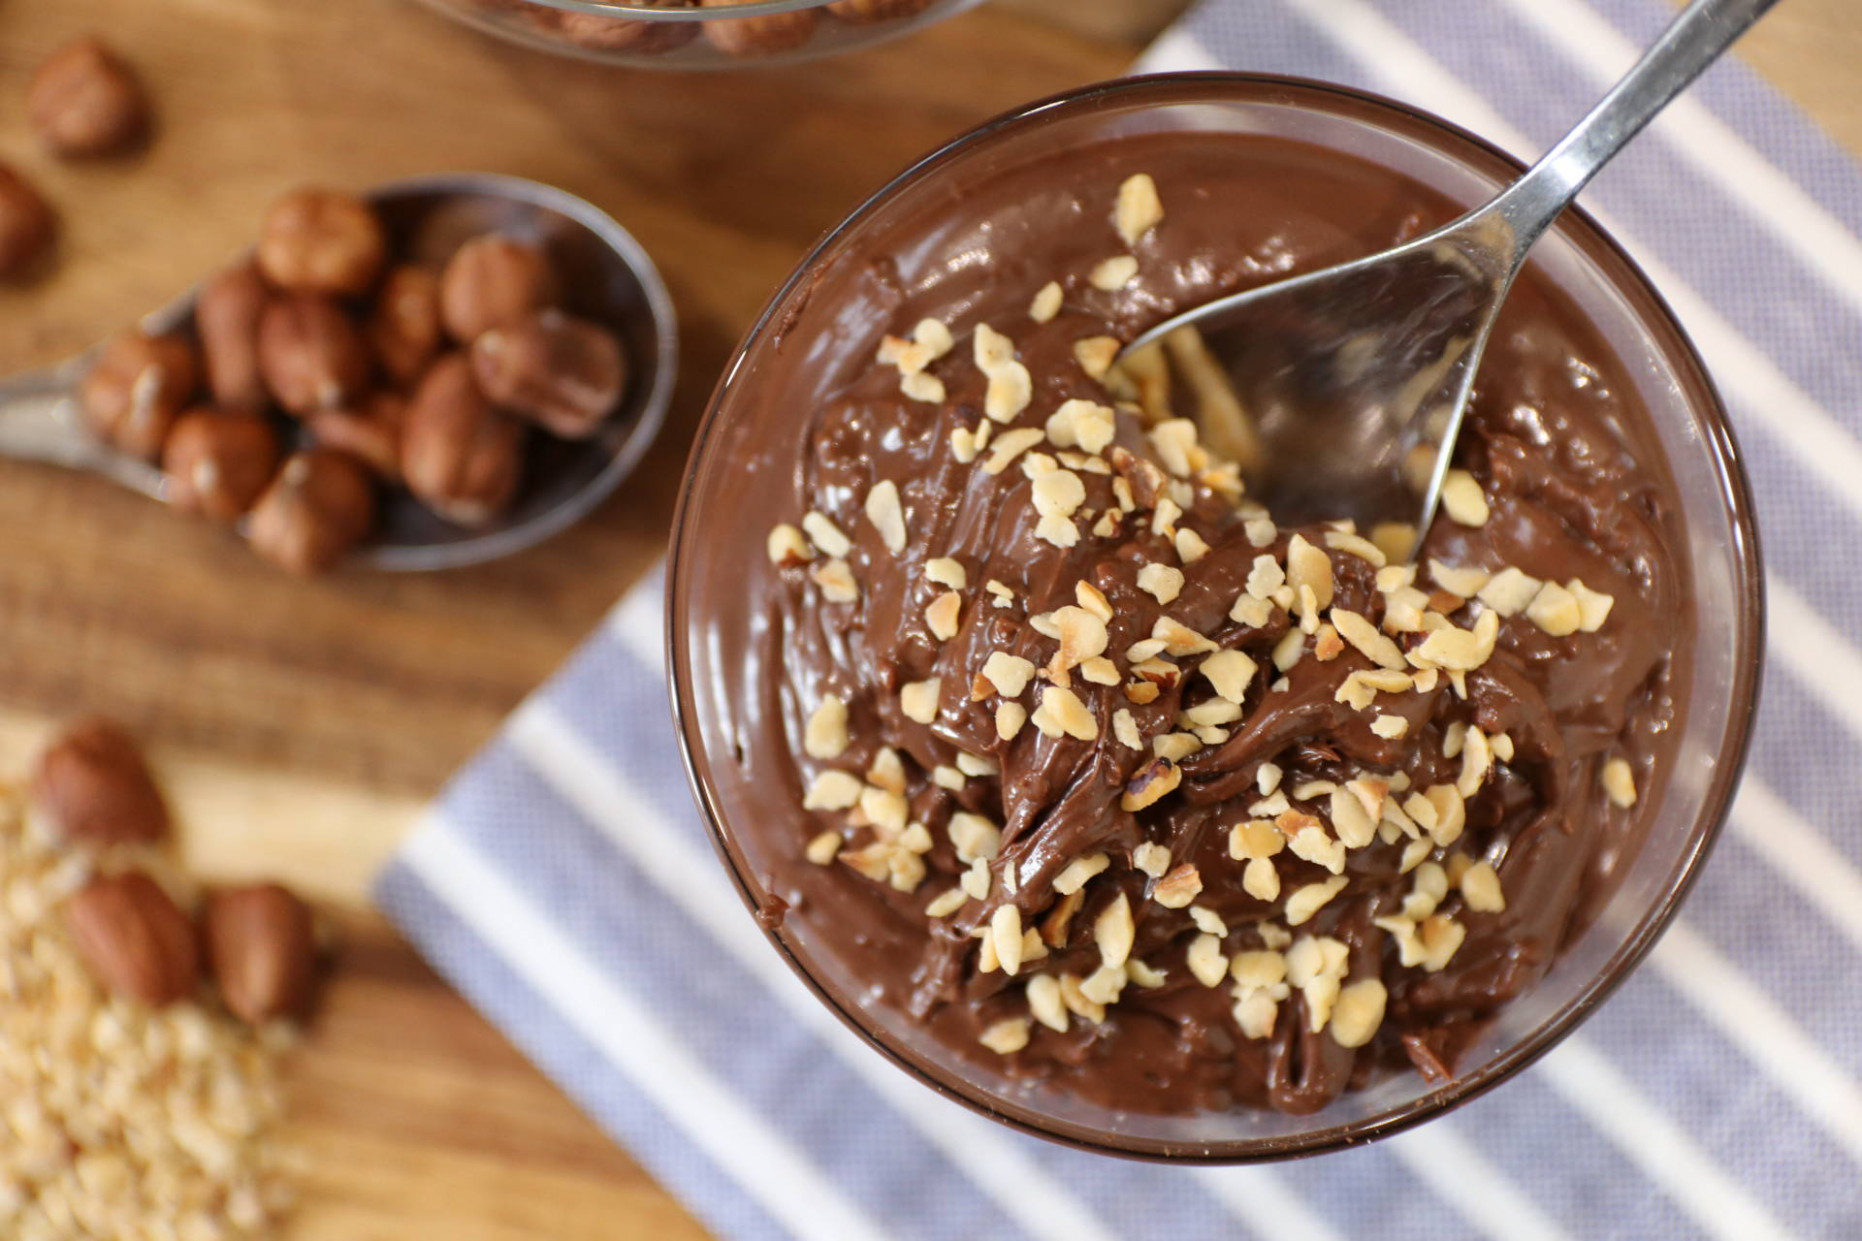 RECIPE: Homemade Crunchy Dairy Free Nutella (Vegan, Gluten ..